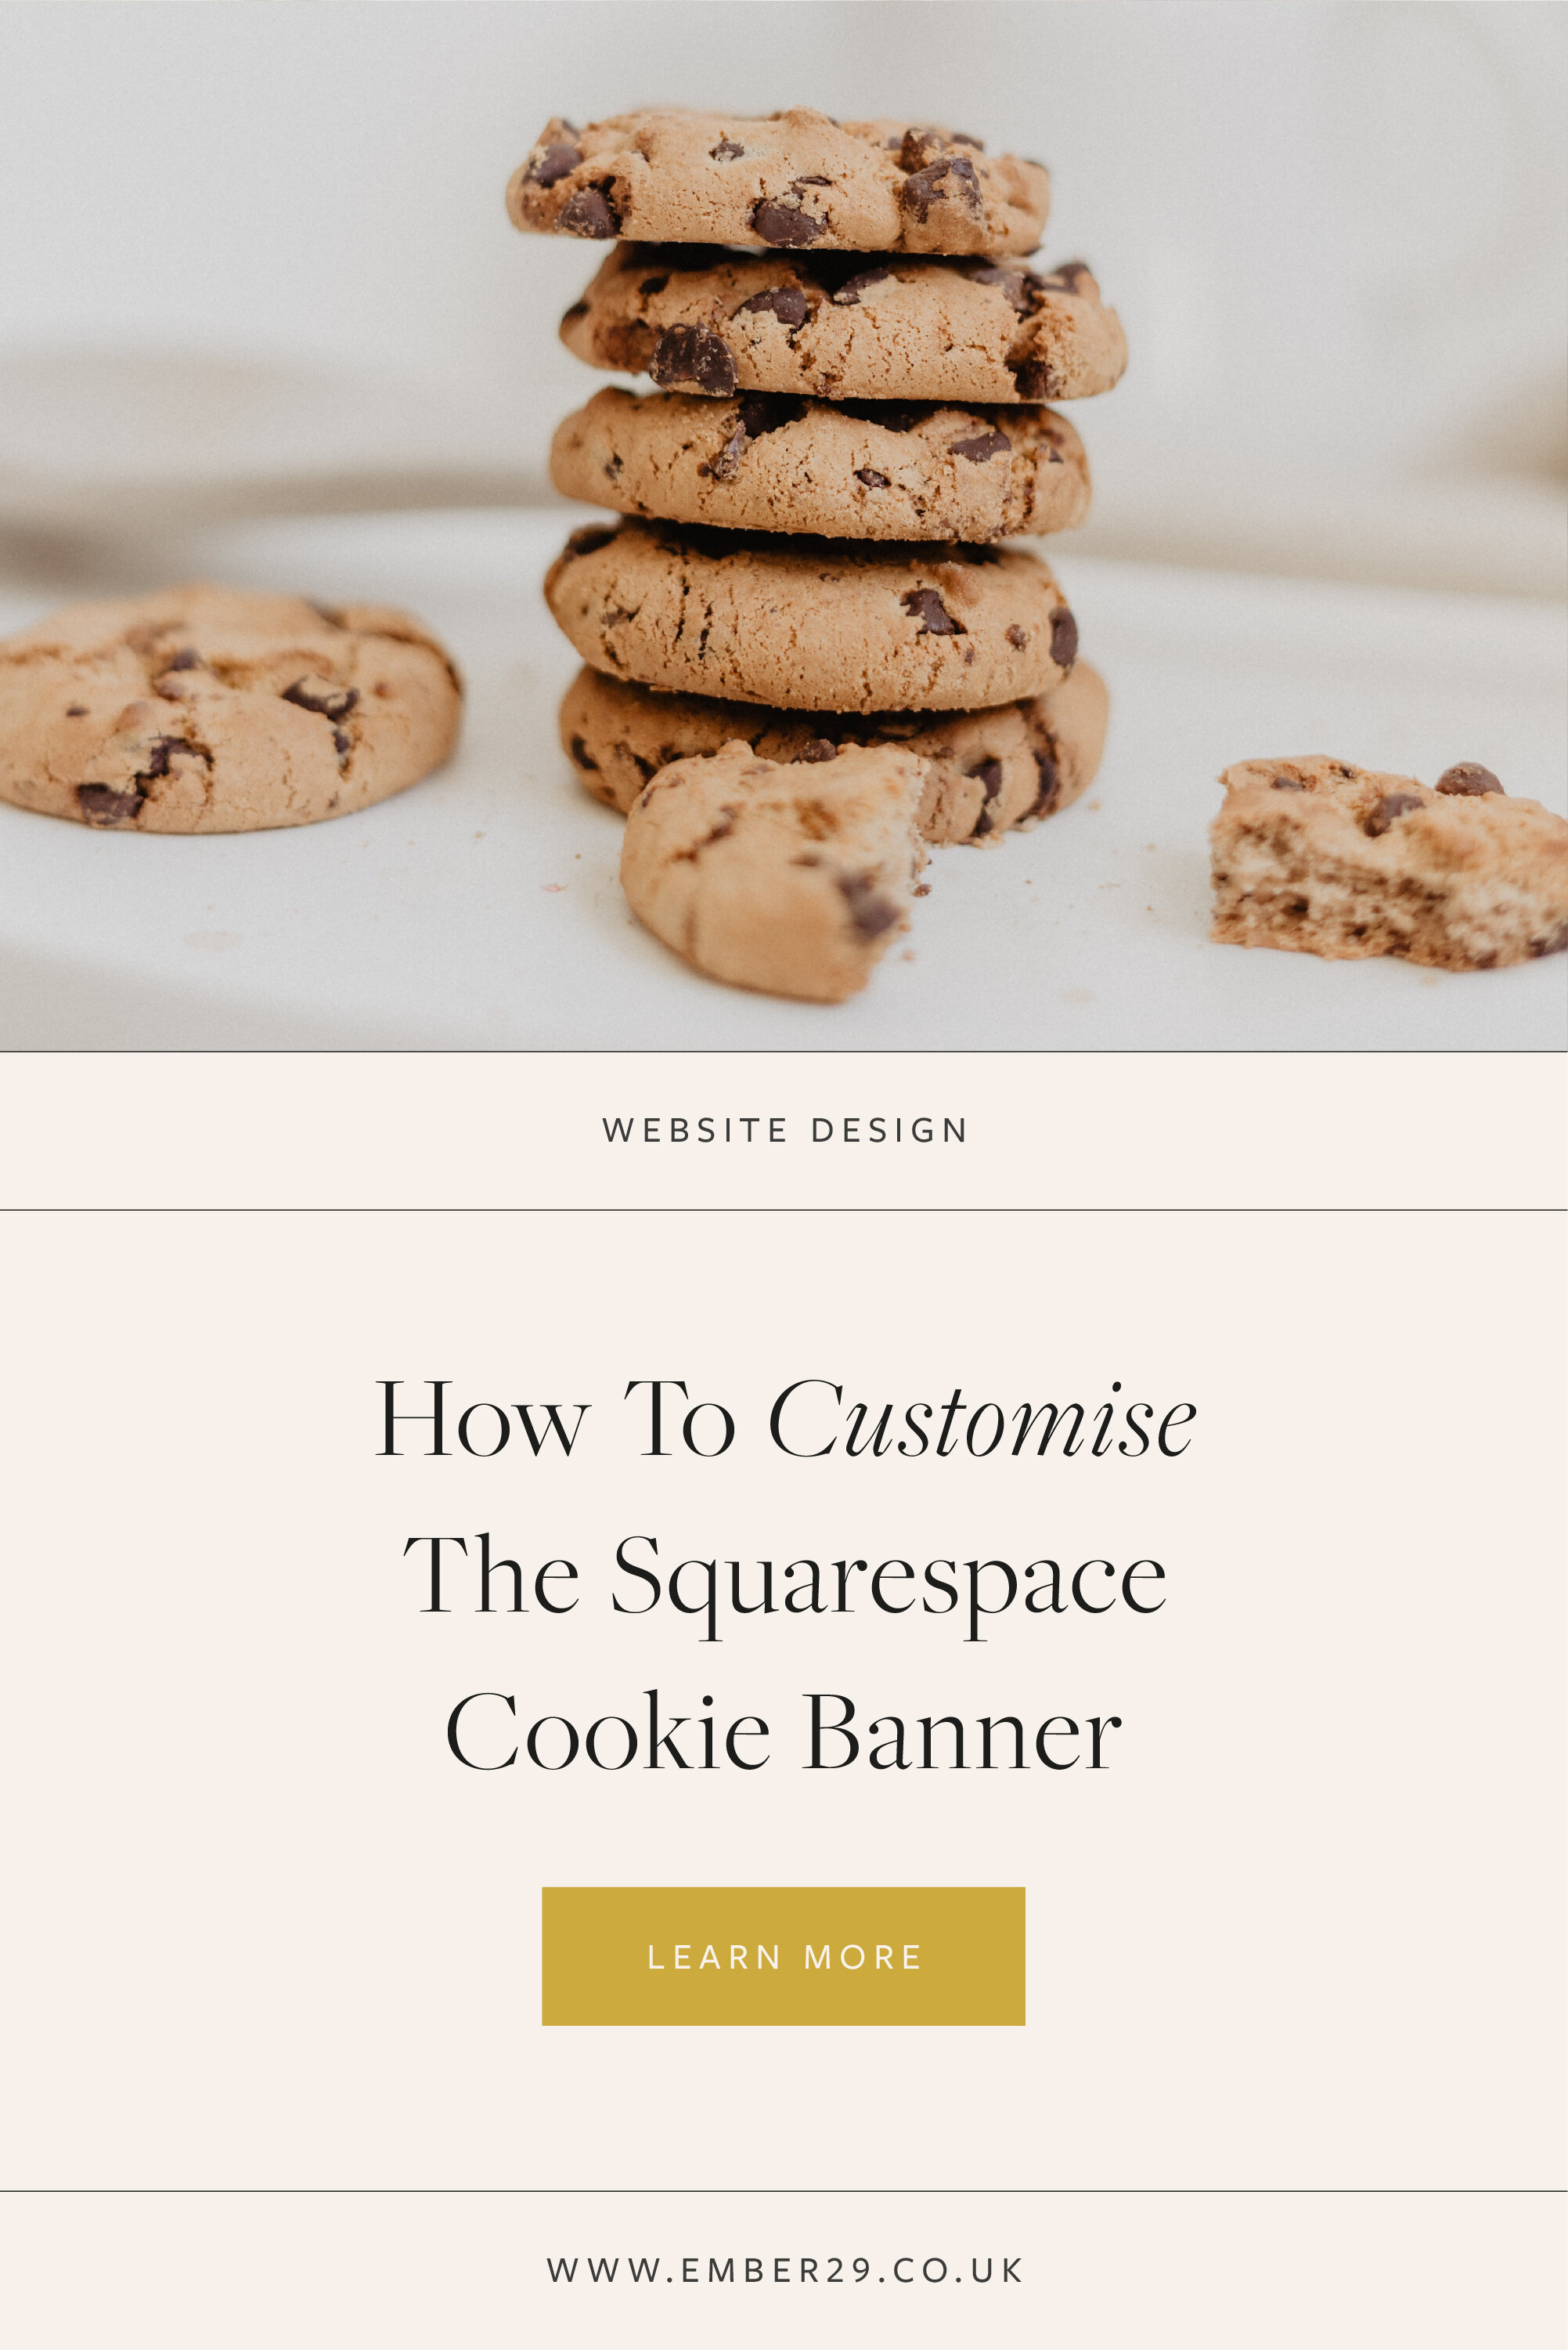 How To Customise The Squarespace Cookie Banner